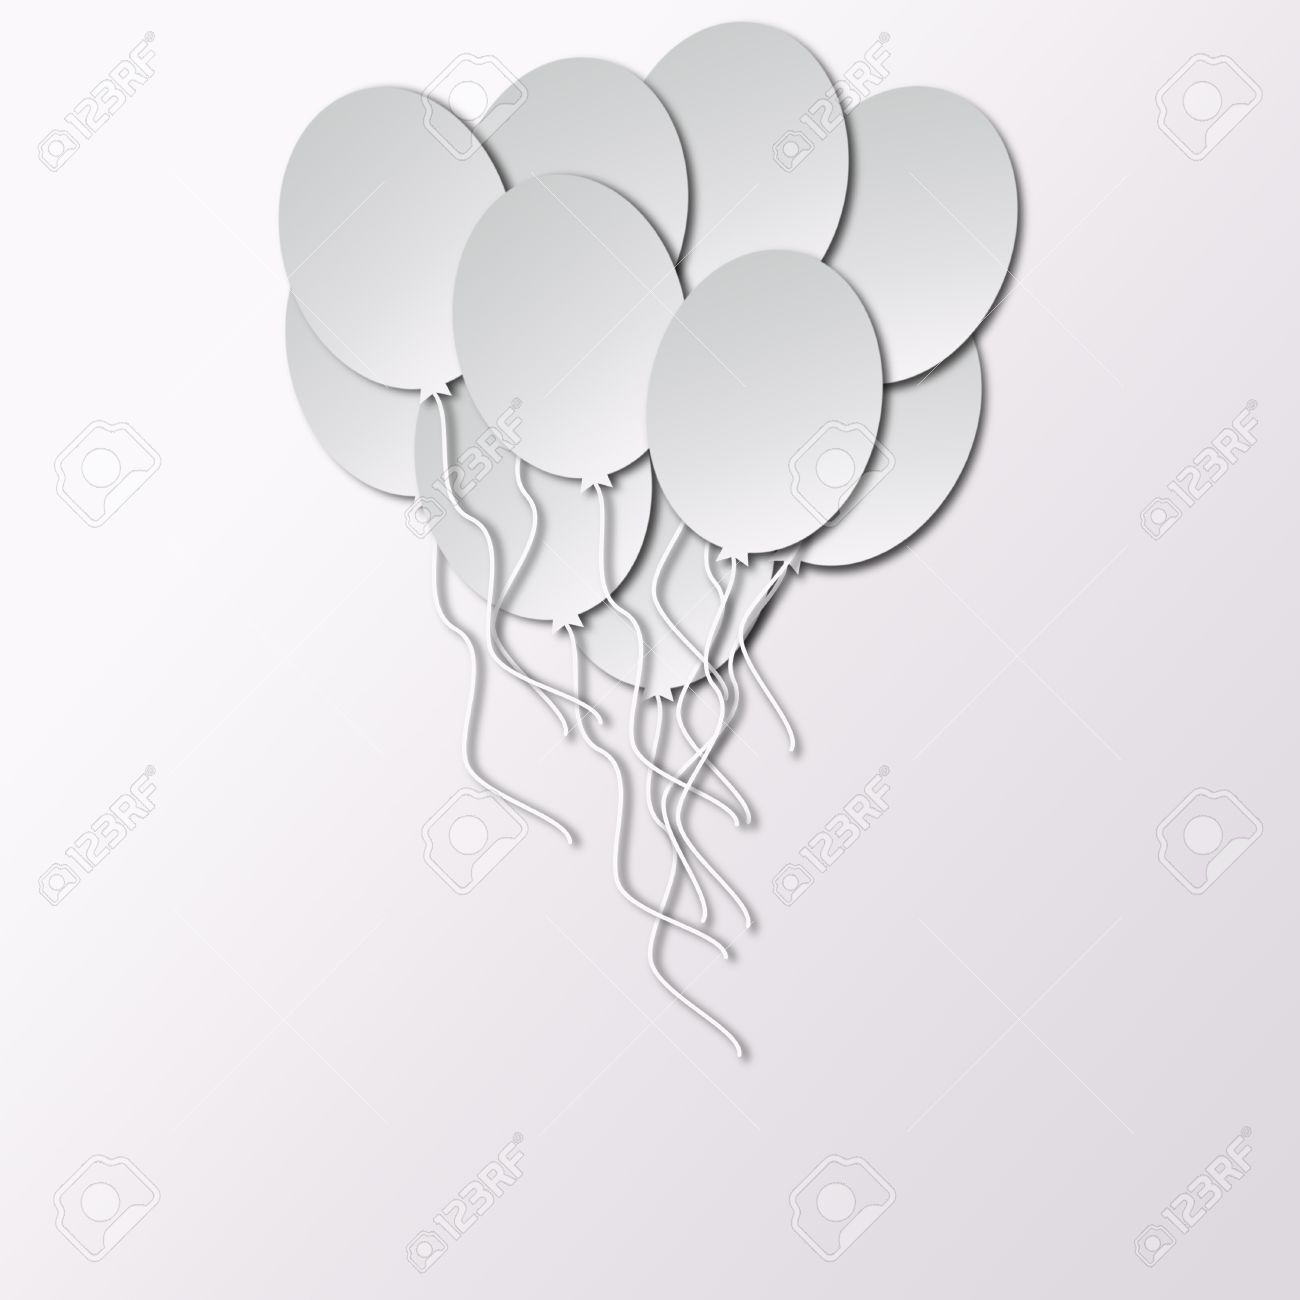 template for happy birthday greeting card with white balloons